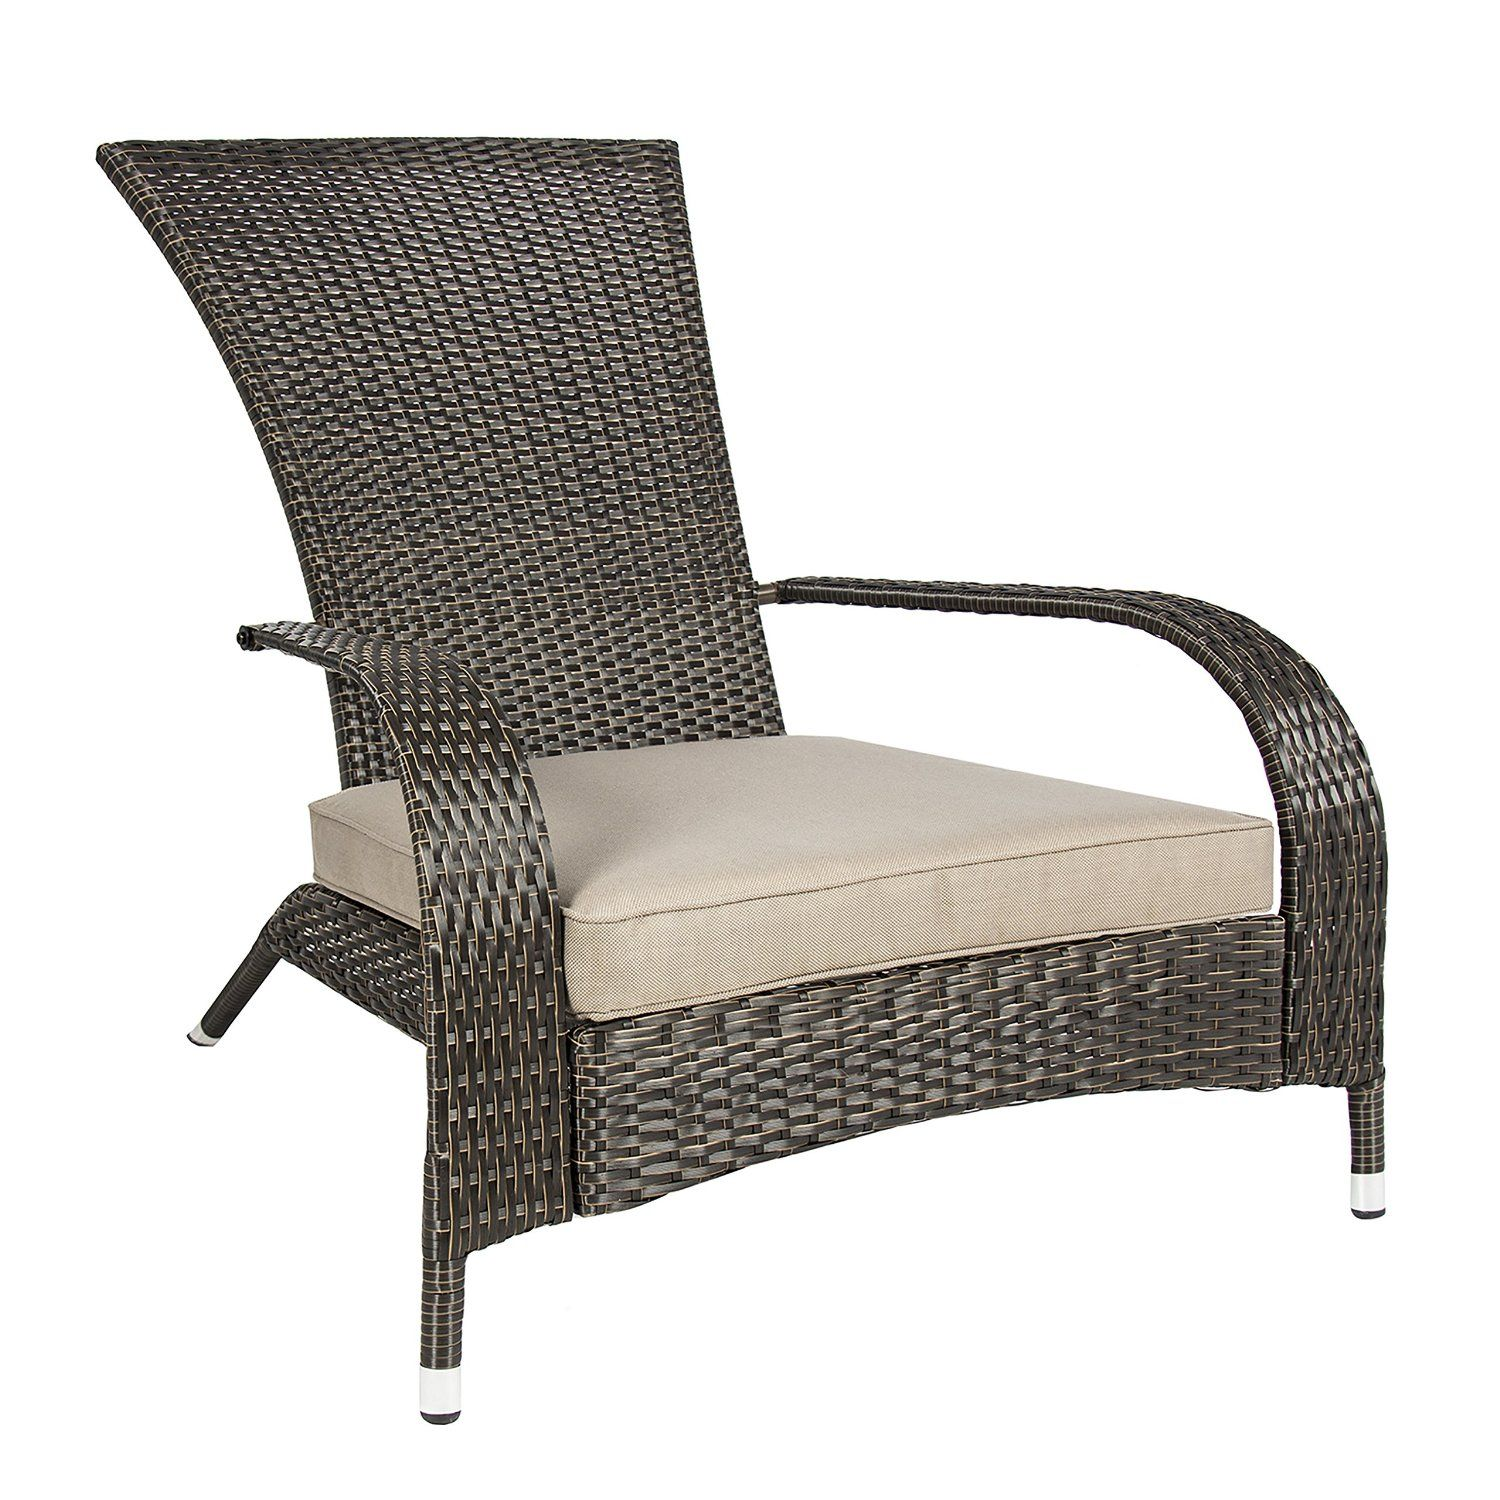 amazon : best choiceproducts wicker adirondack chair patio porch